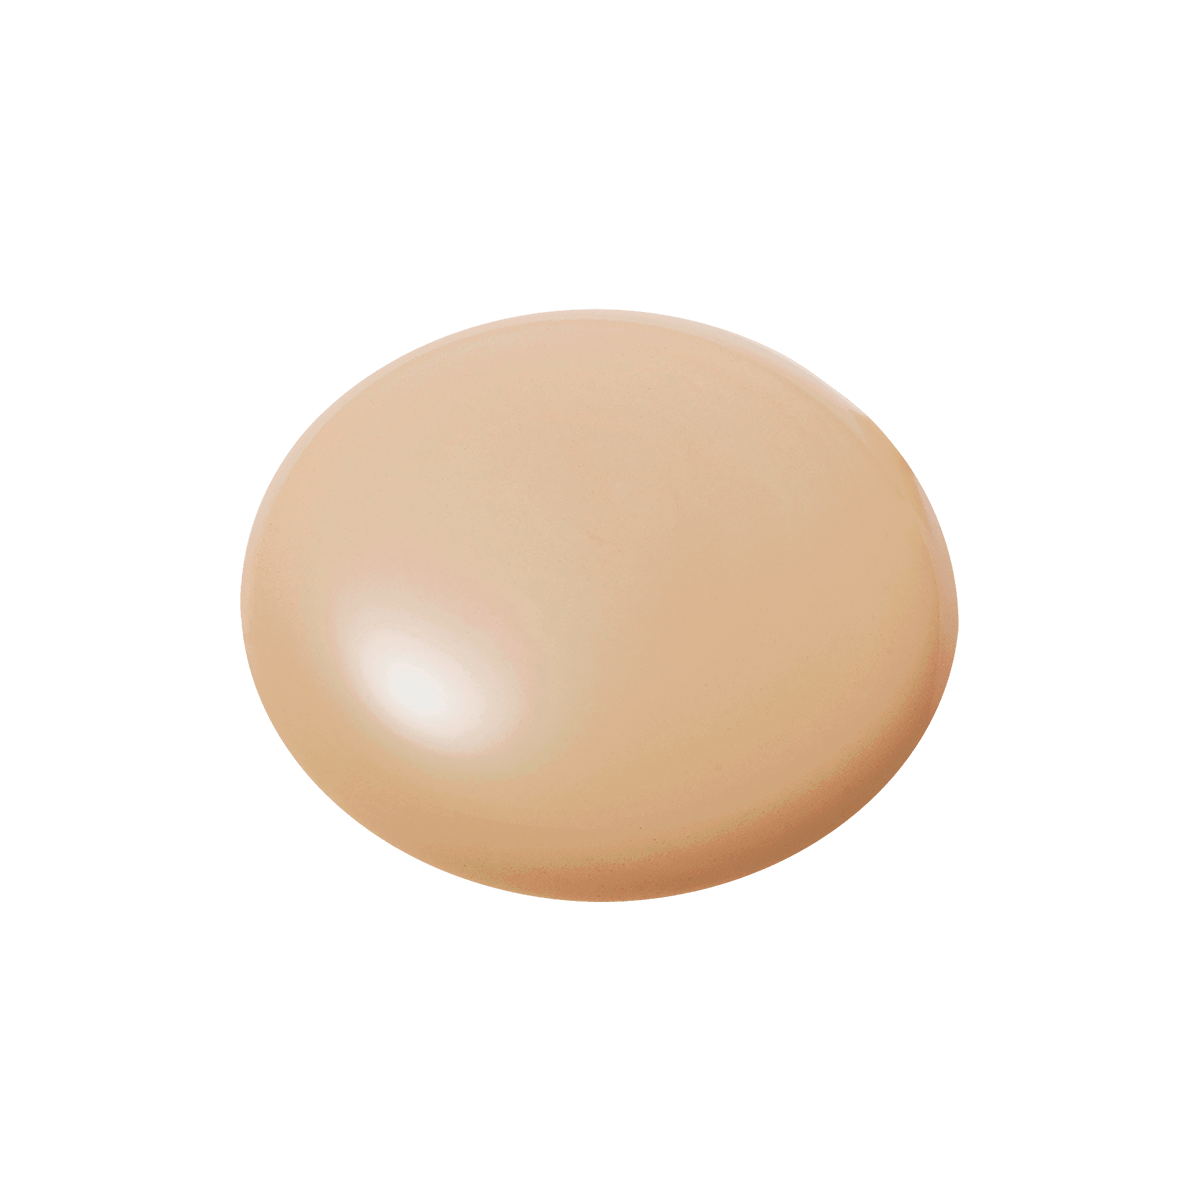 collab-meet-your-matte-velvet-foundation-sand-shade.png